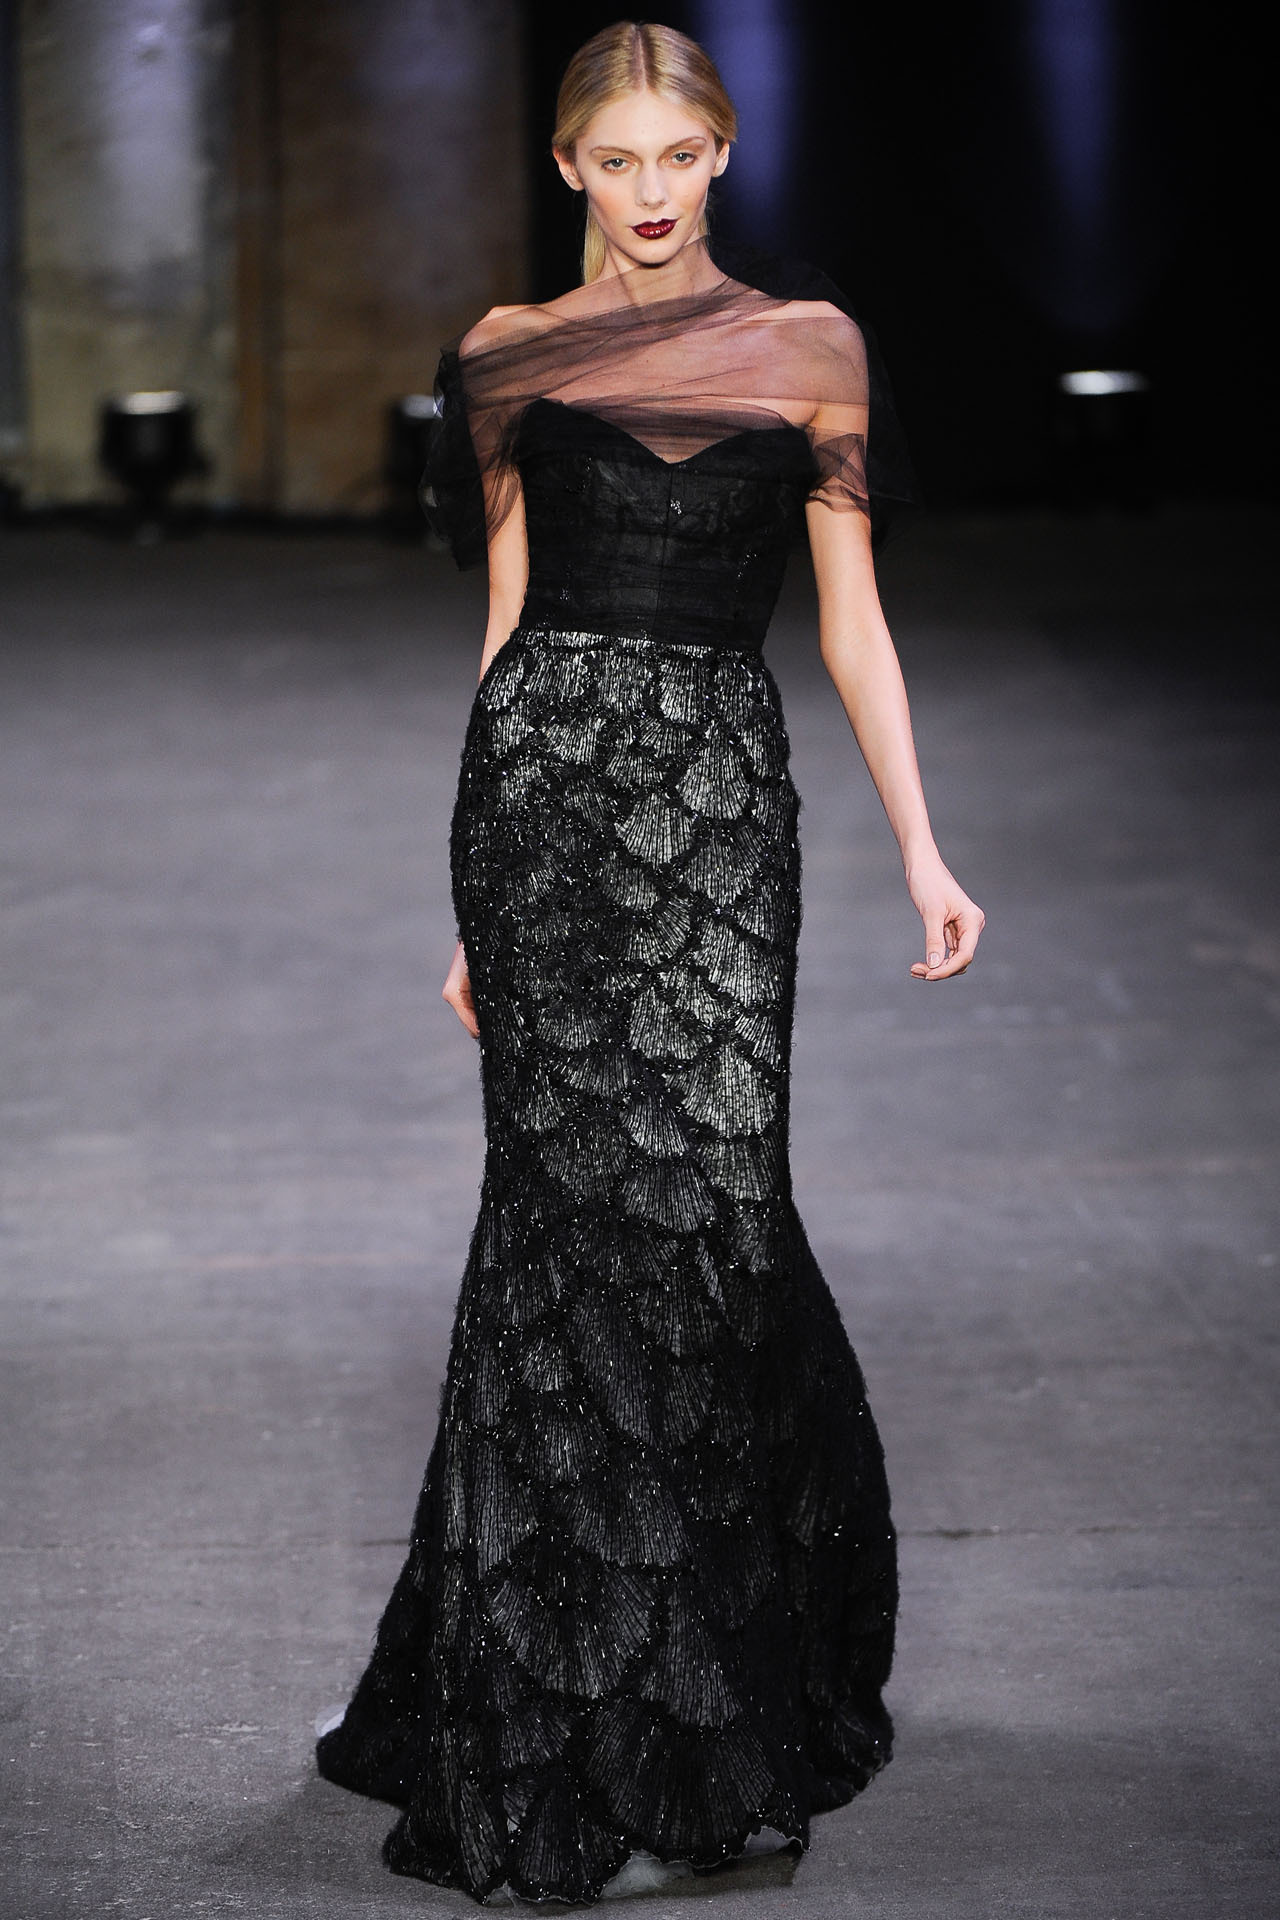 aclockworkpink:  Christian Siriano F/W 2012, New York Fashion Week